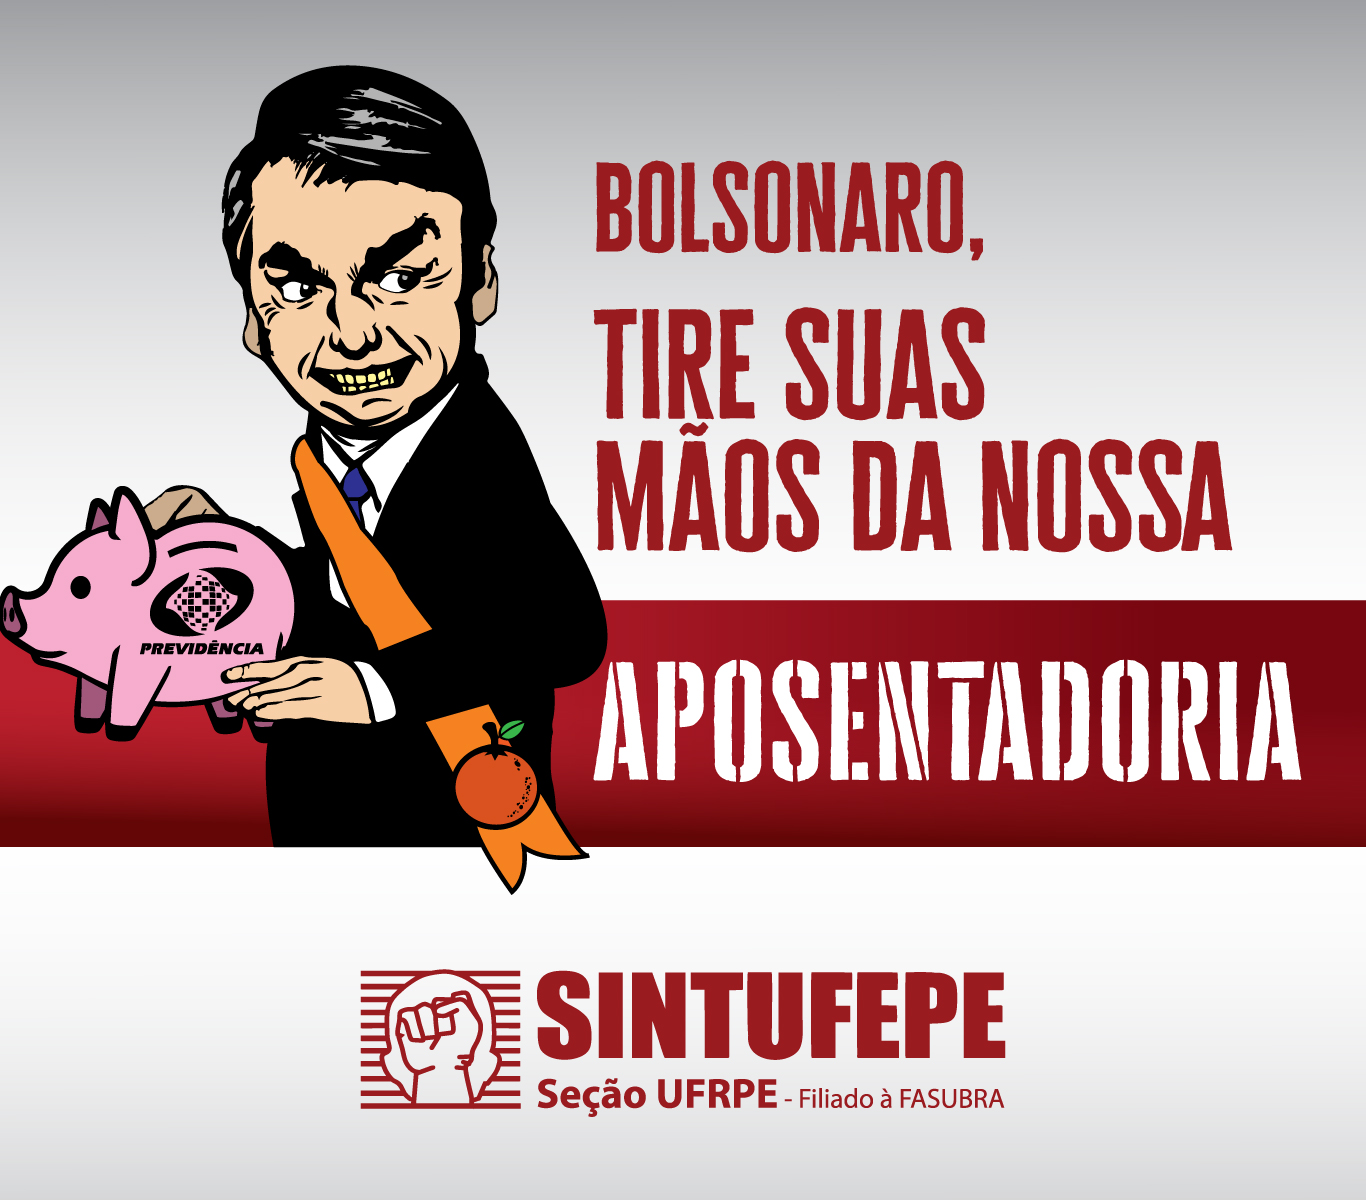 http://www.sintufepeufrpe.org.br/wp-content/uploads/previdencia-bozo.jpg